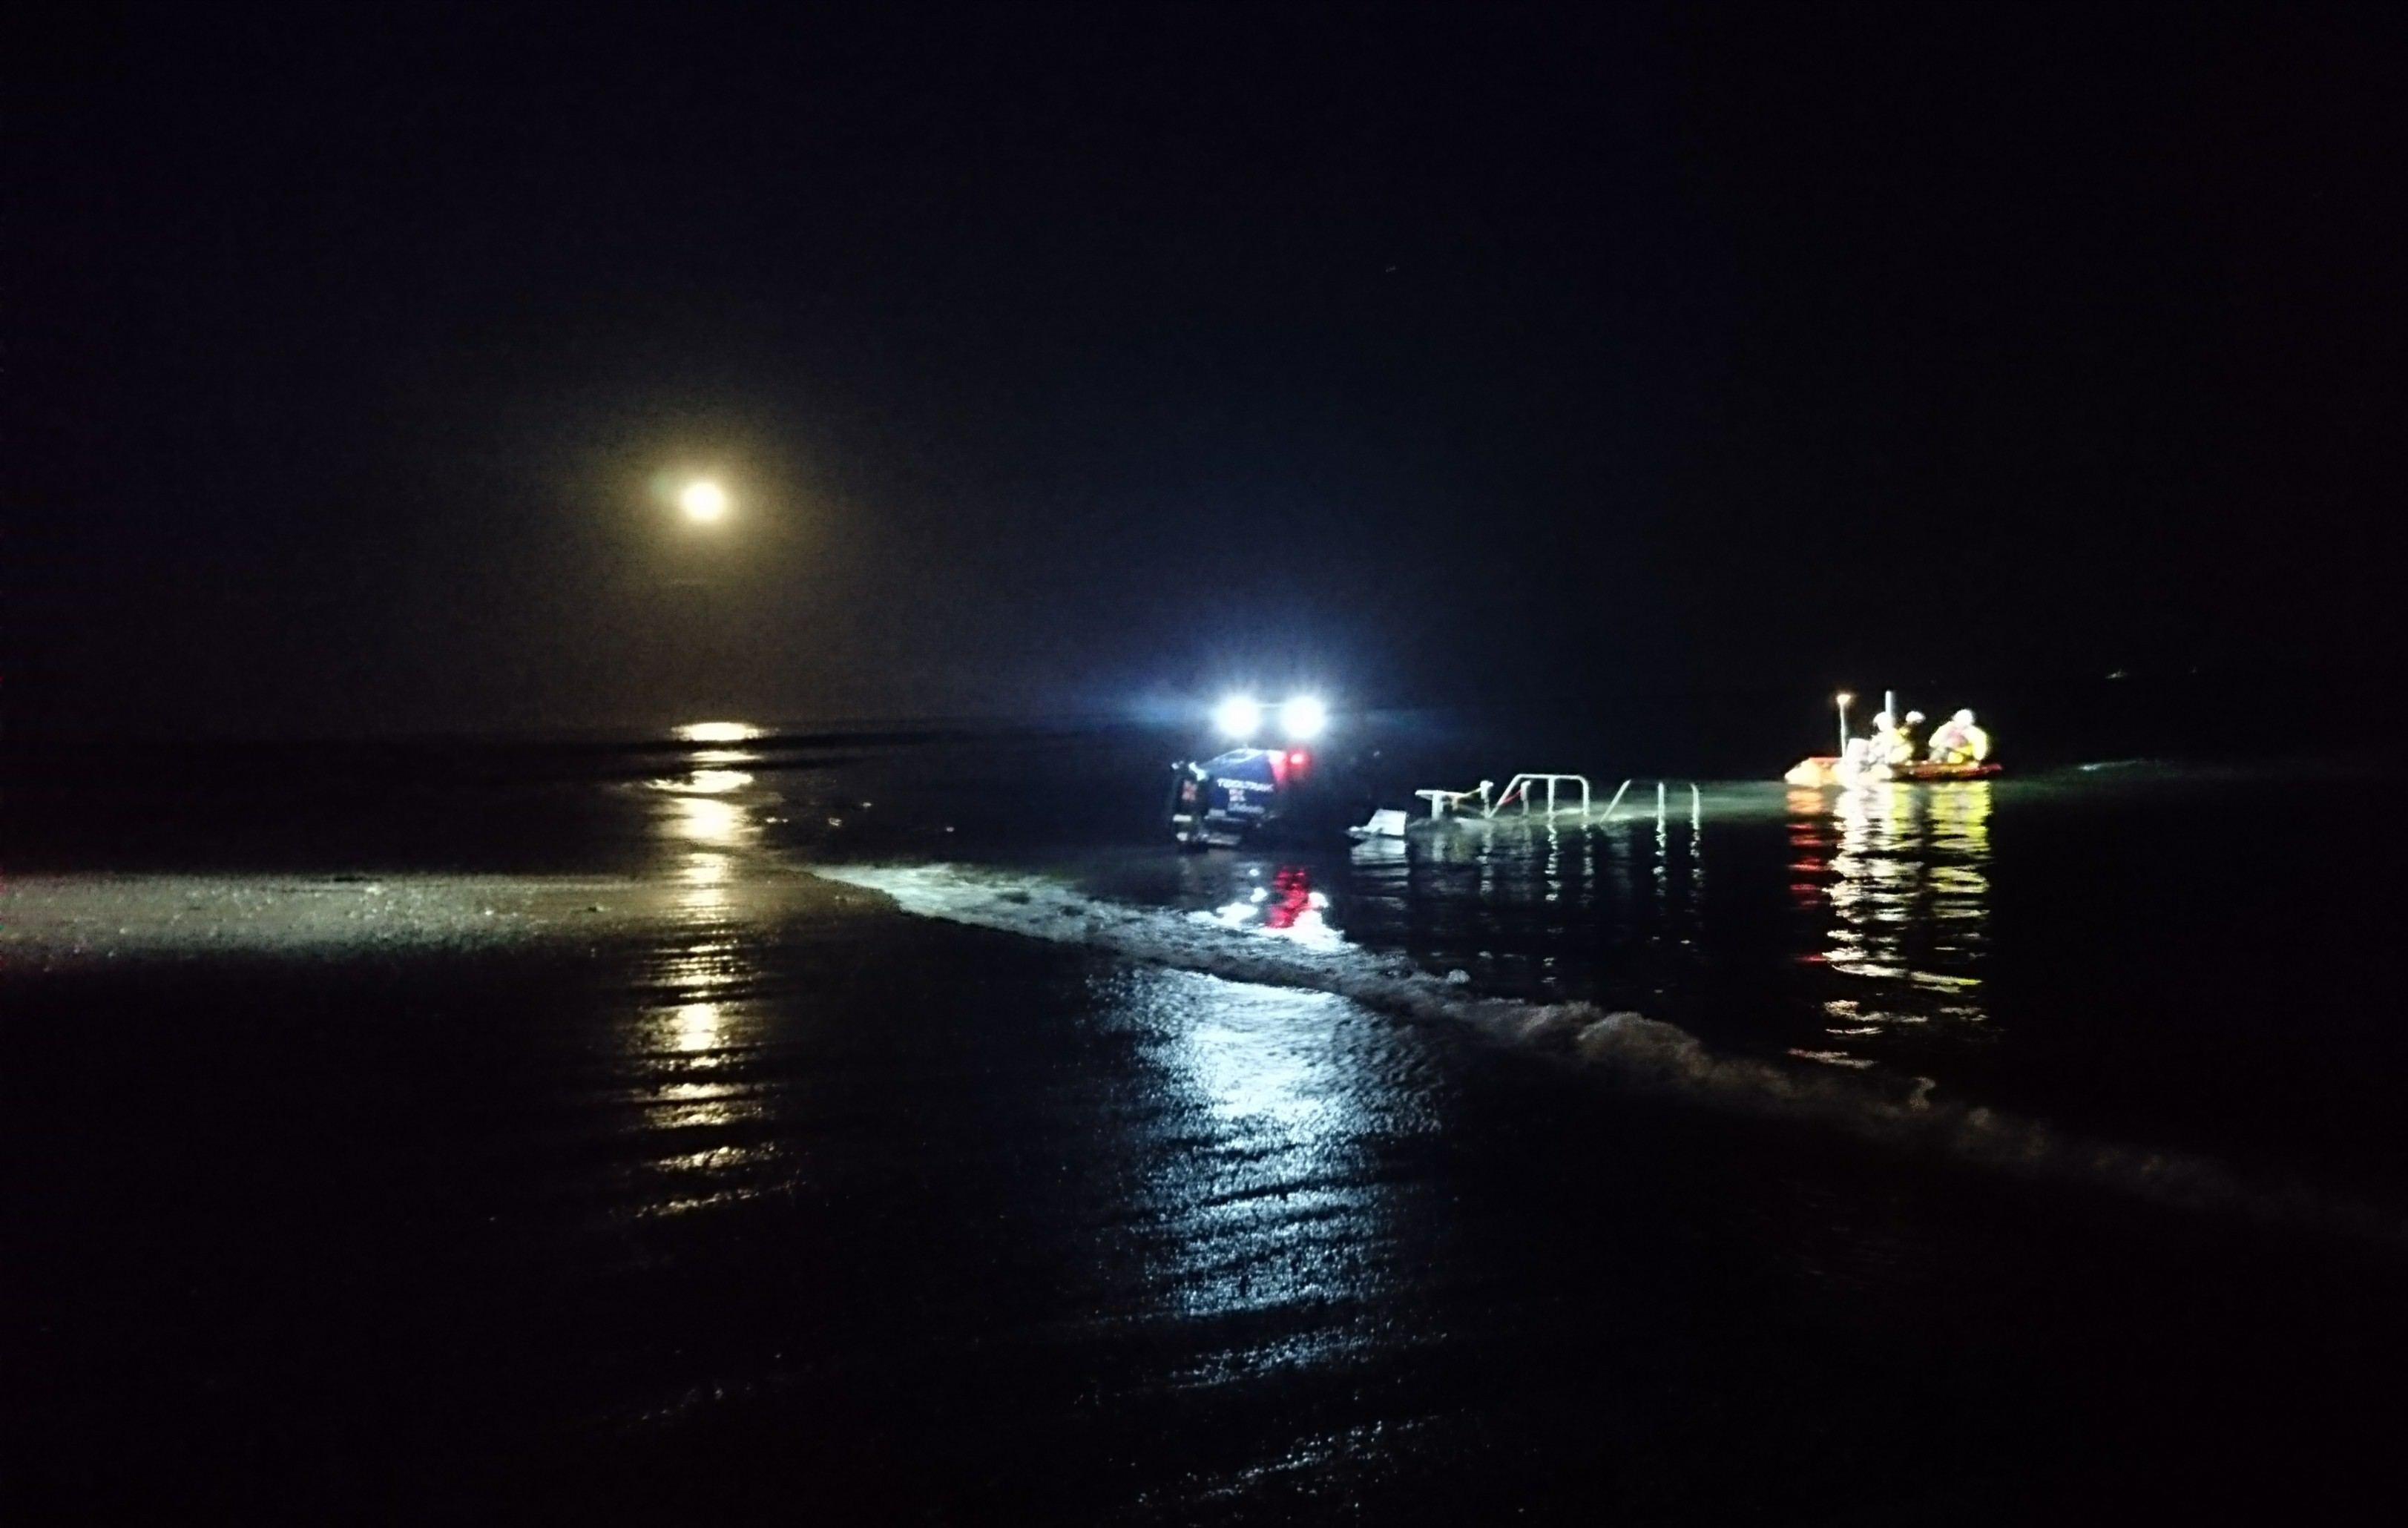 D class lifeboat George Bearman II recovers under a full moon